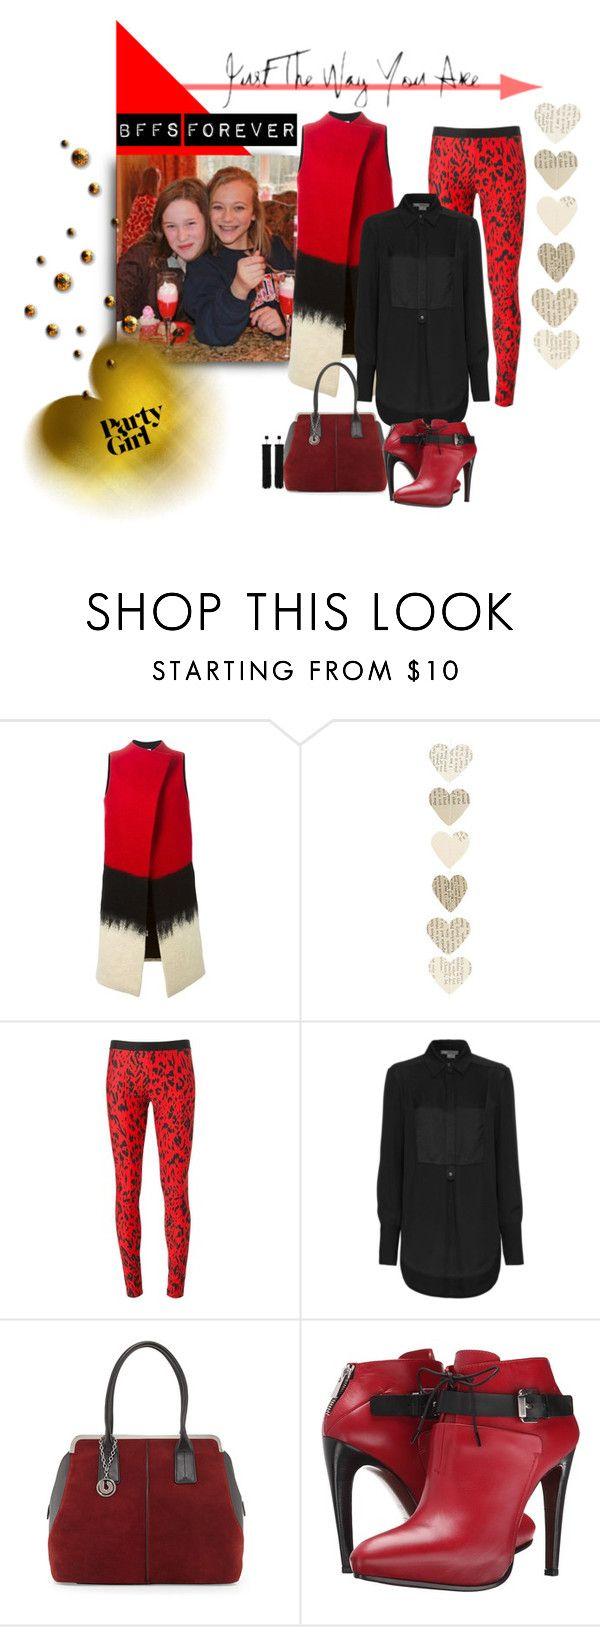 """""""BFFs Forever"""" by michelletheaflack ❤ liked on Polyvore featuring Sybilla, FAUSTO PUGLISI, Vince, Charles Jourdan, COSTUME NATIONAL, Tom Ford, women's clothing, women, female and woman"""